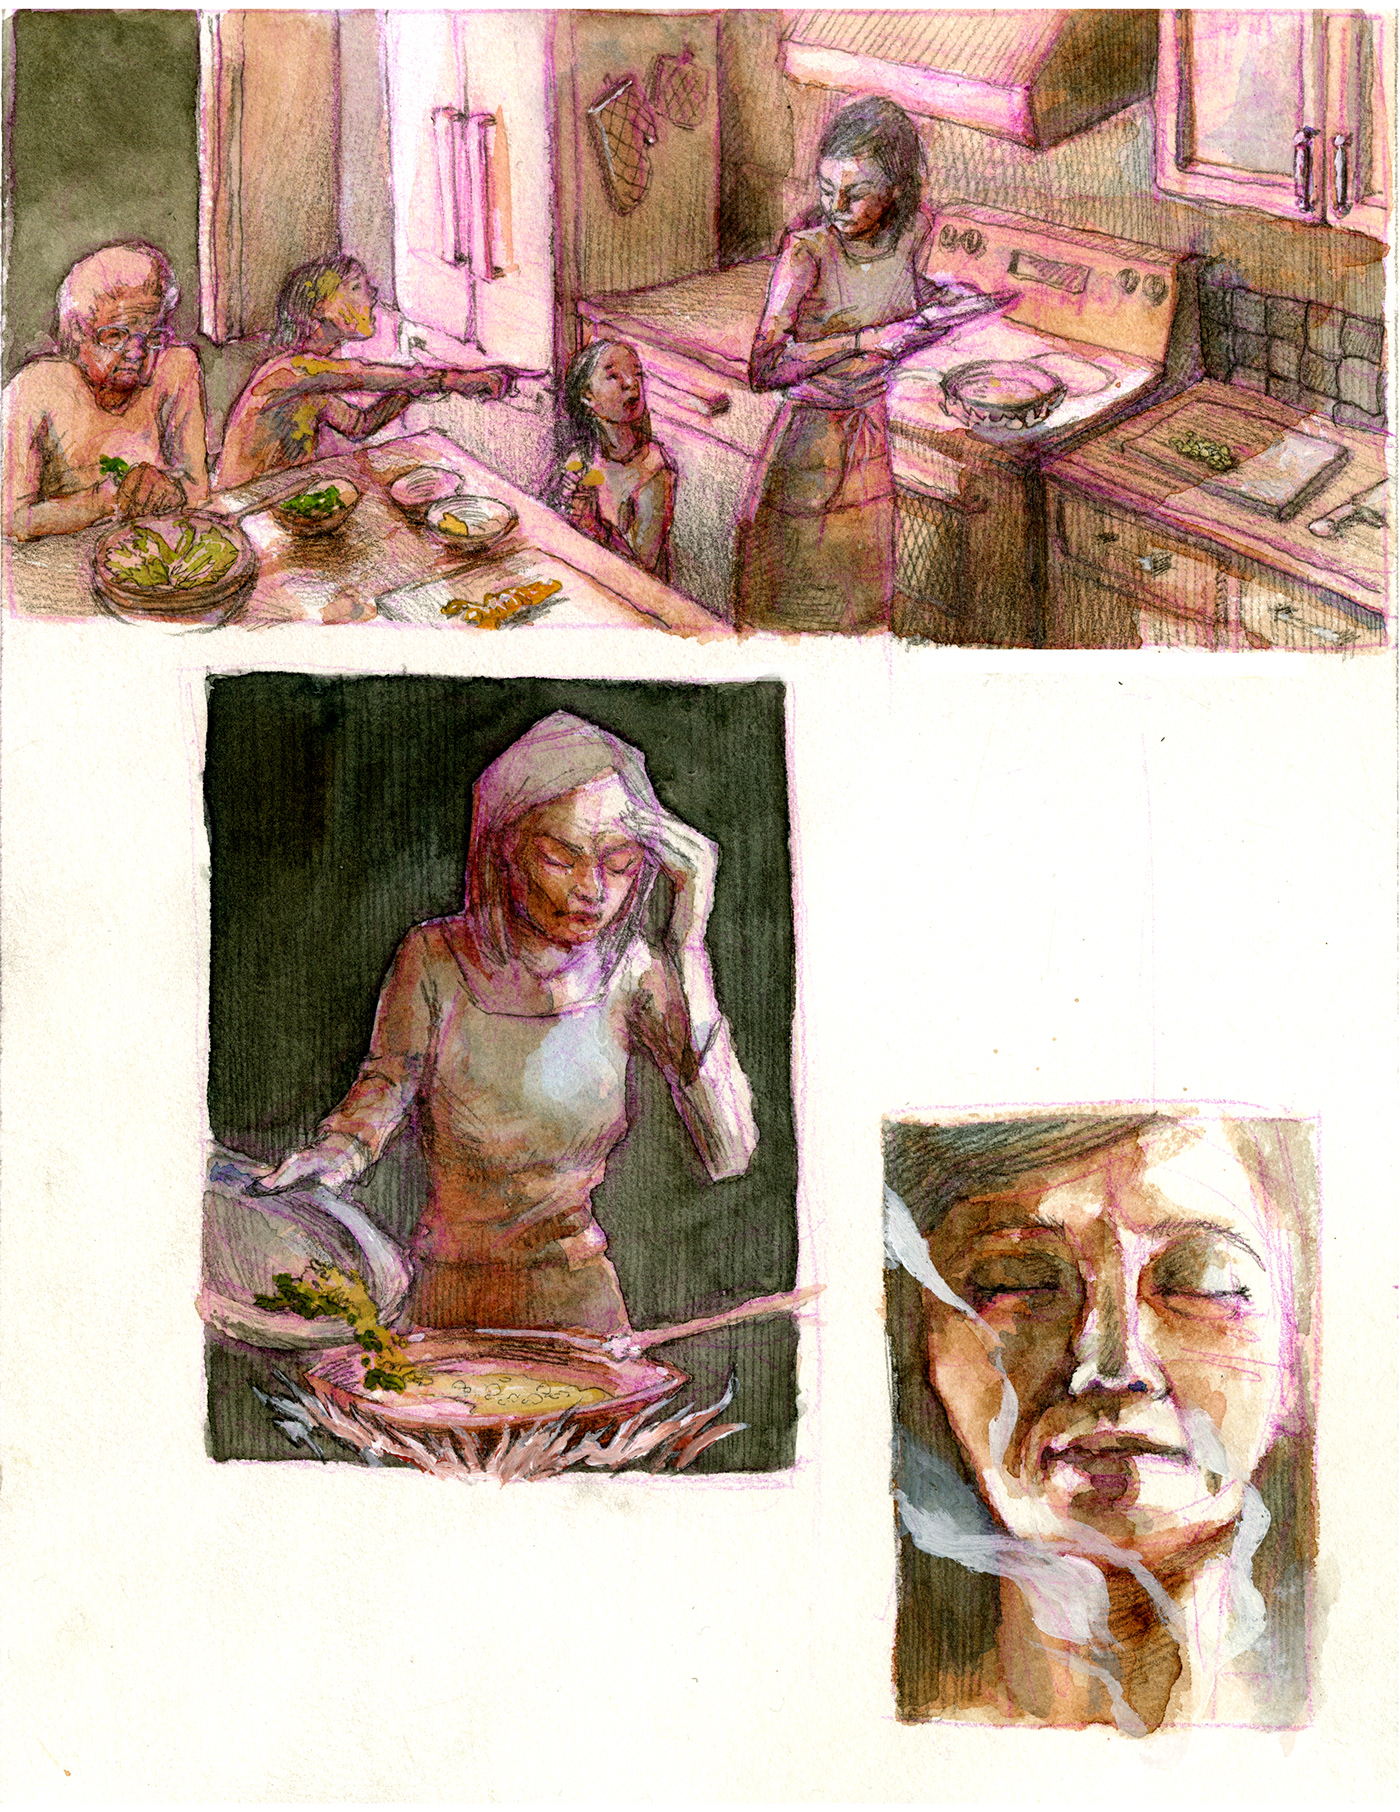 kitchen biography personal cooking Culinary culture family ILLUSTRATION  comic watercolor